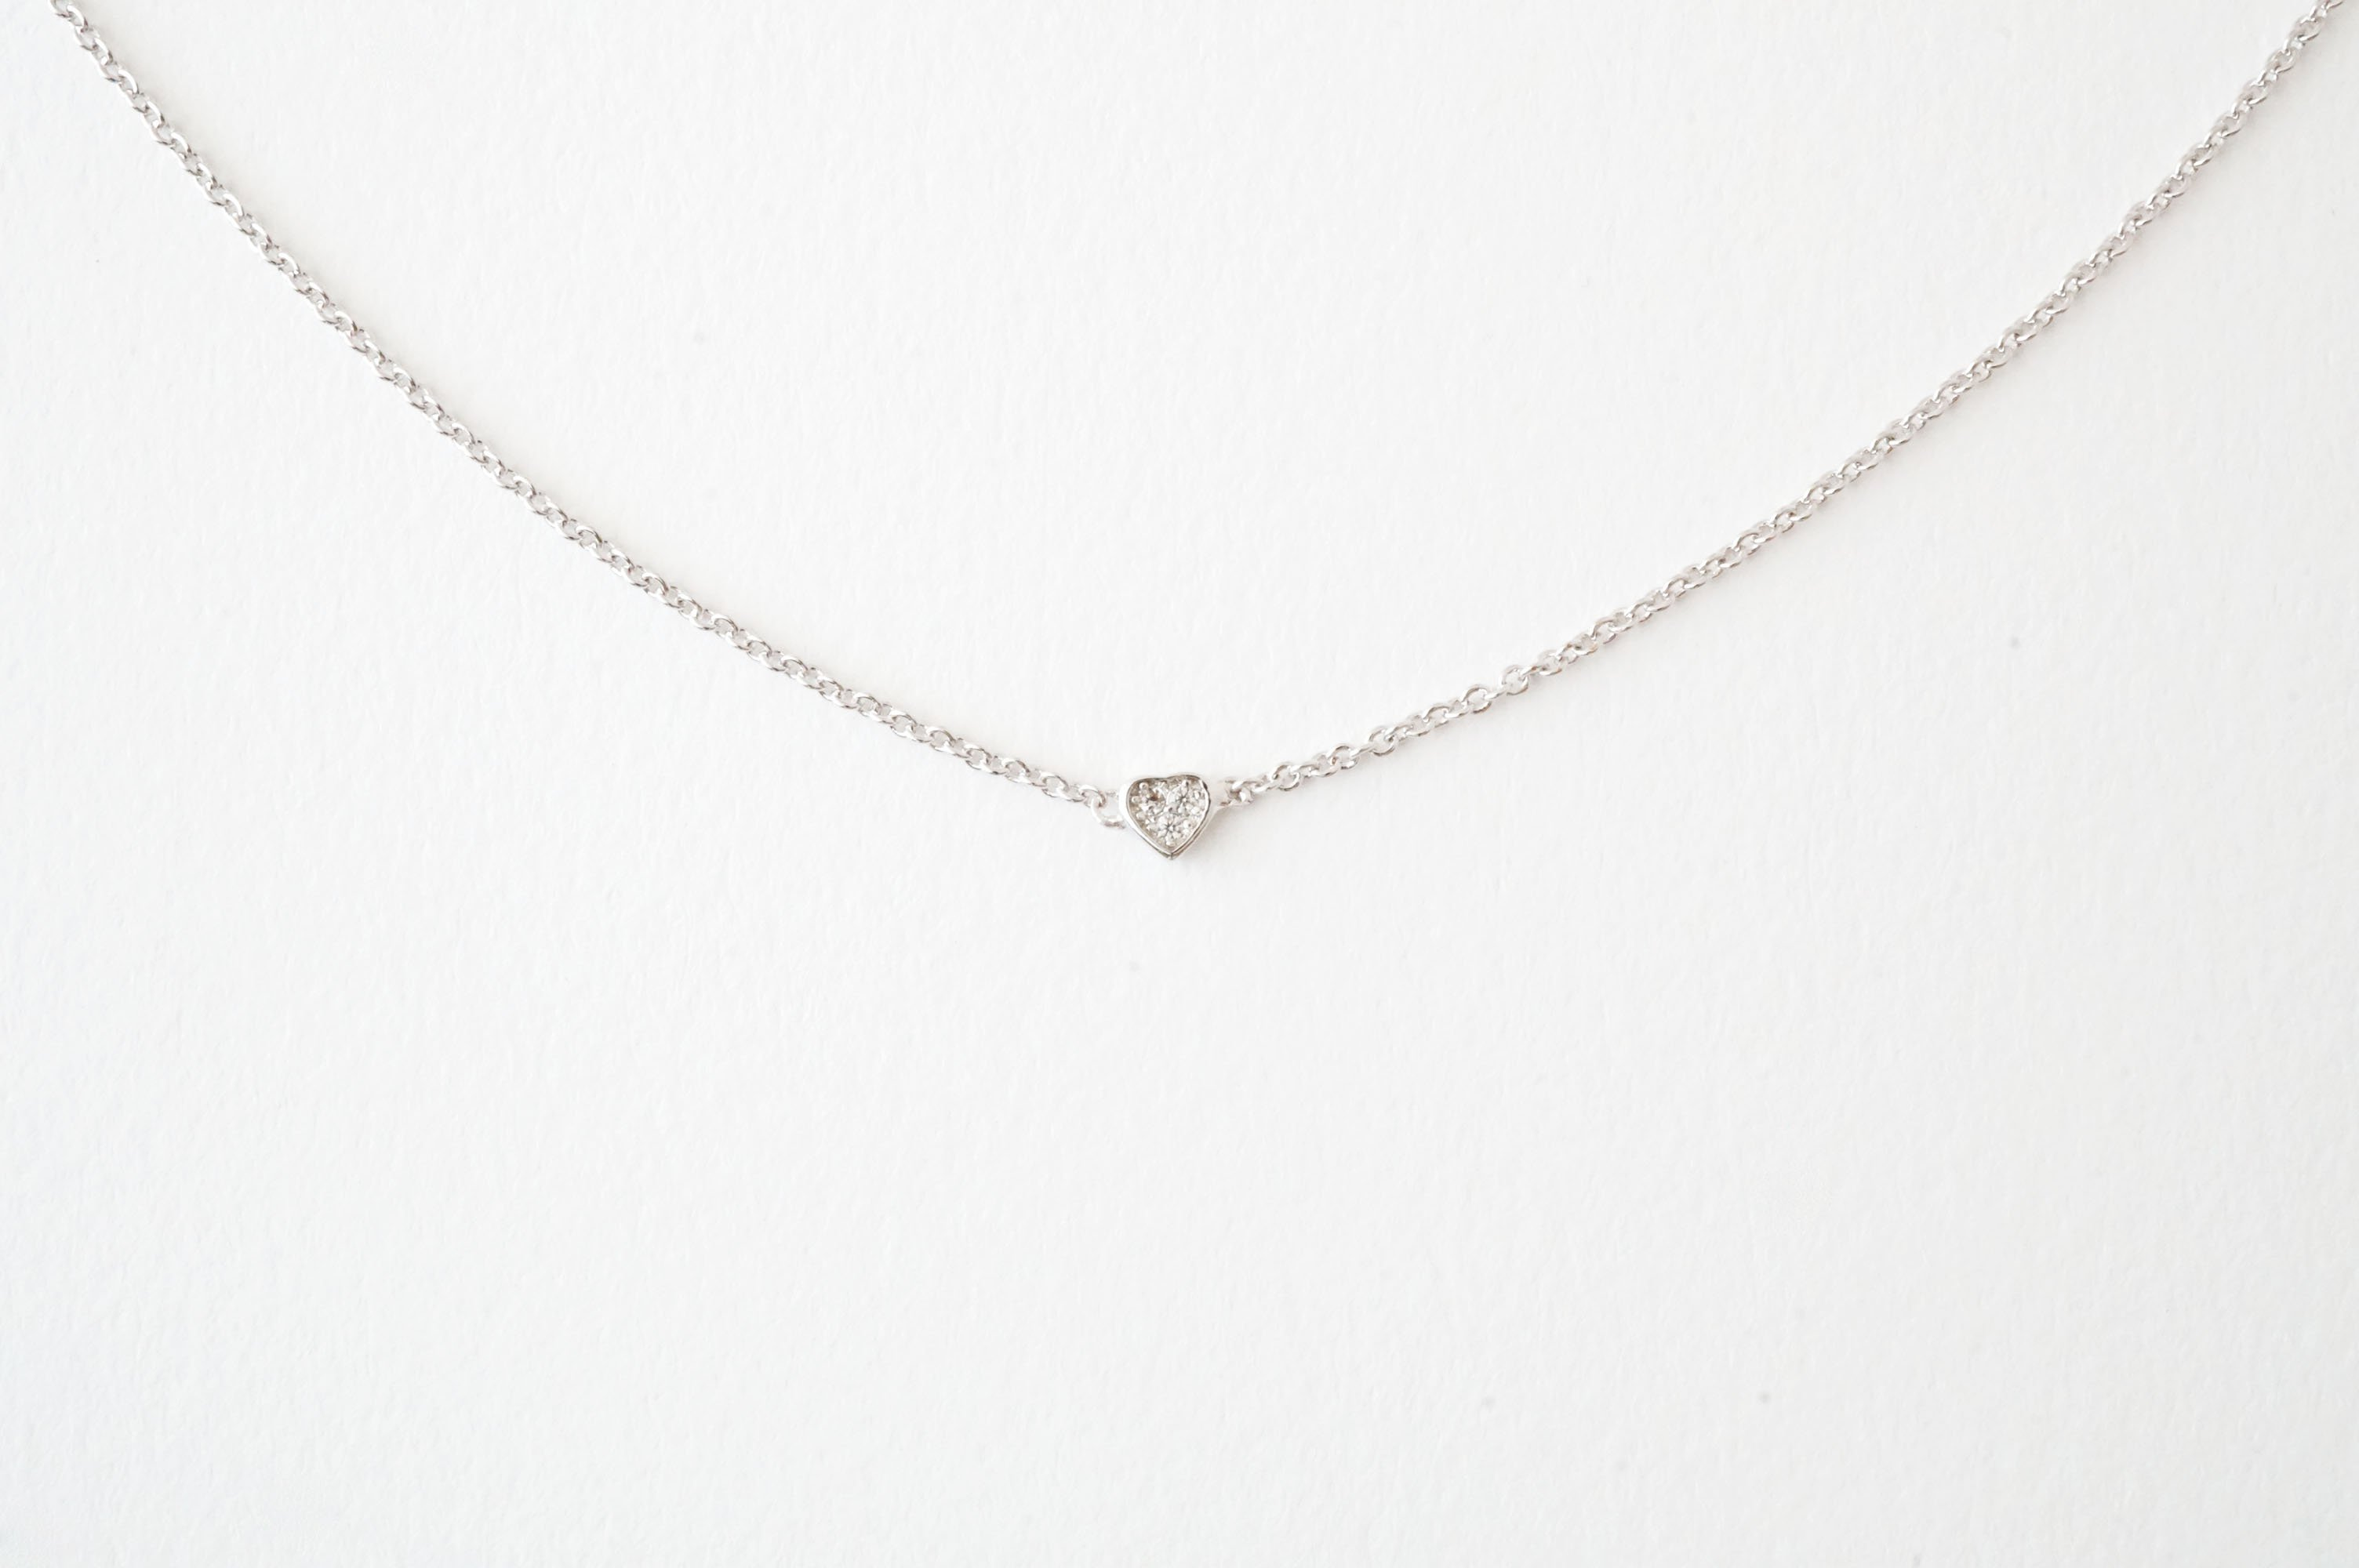 mini lennse isabel product heart necklace